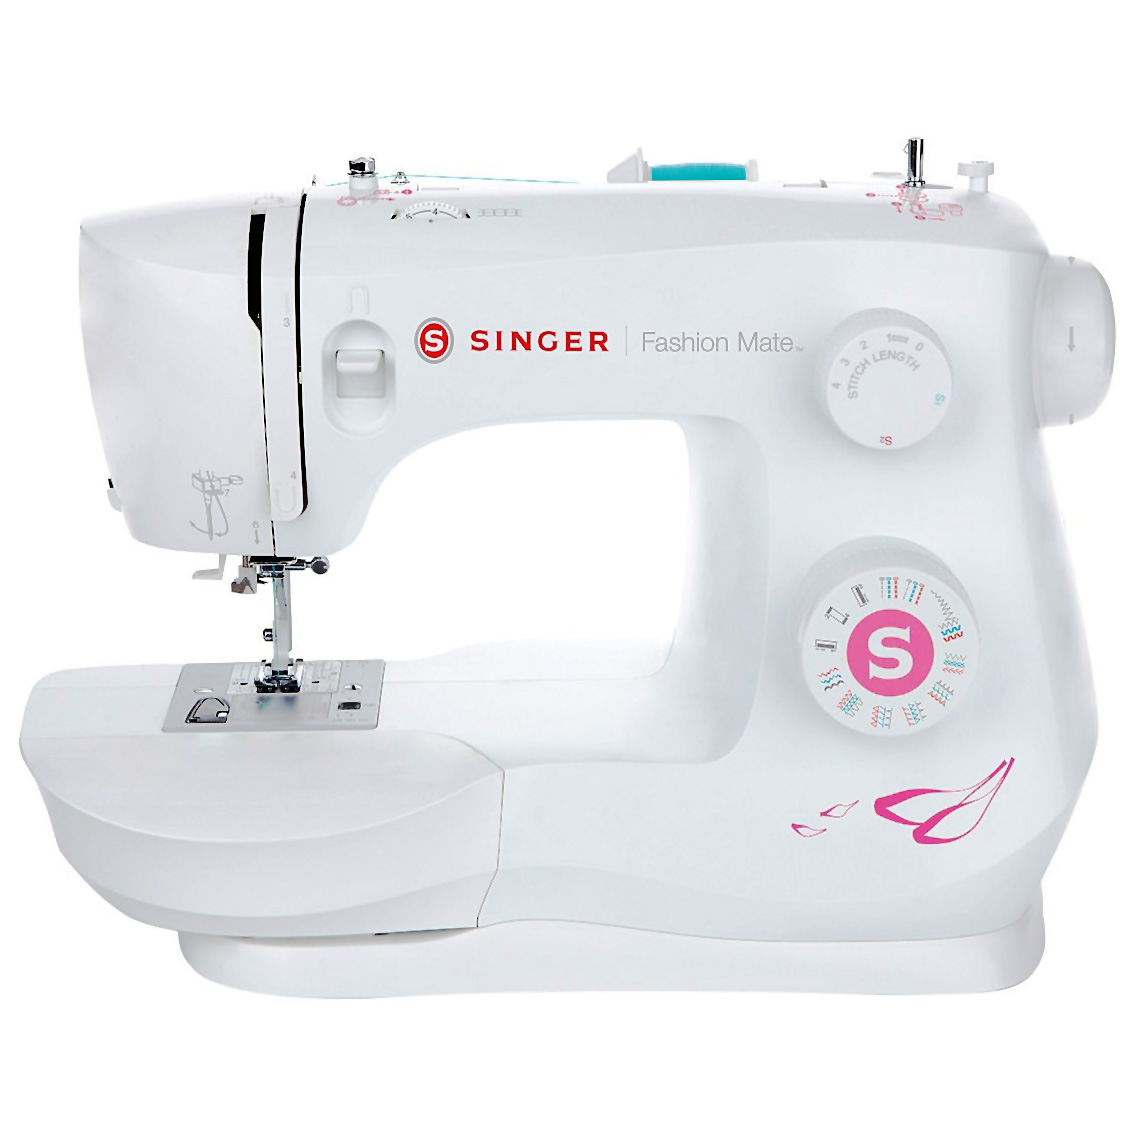 Singer kid sewing machine-Singer Fashion Mate Sewing Machine